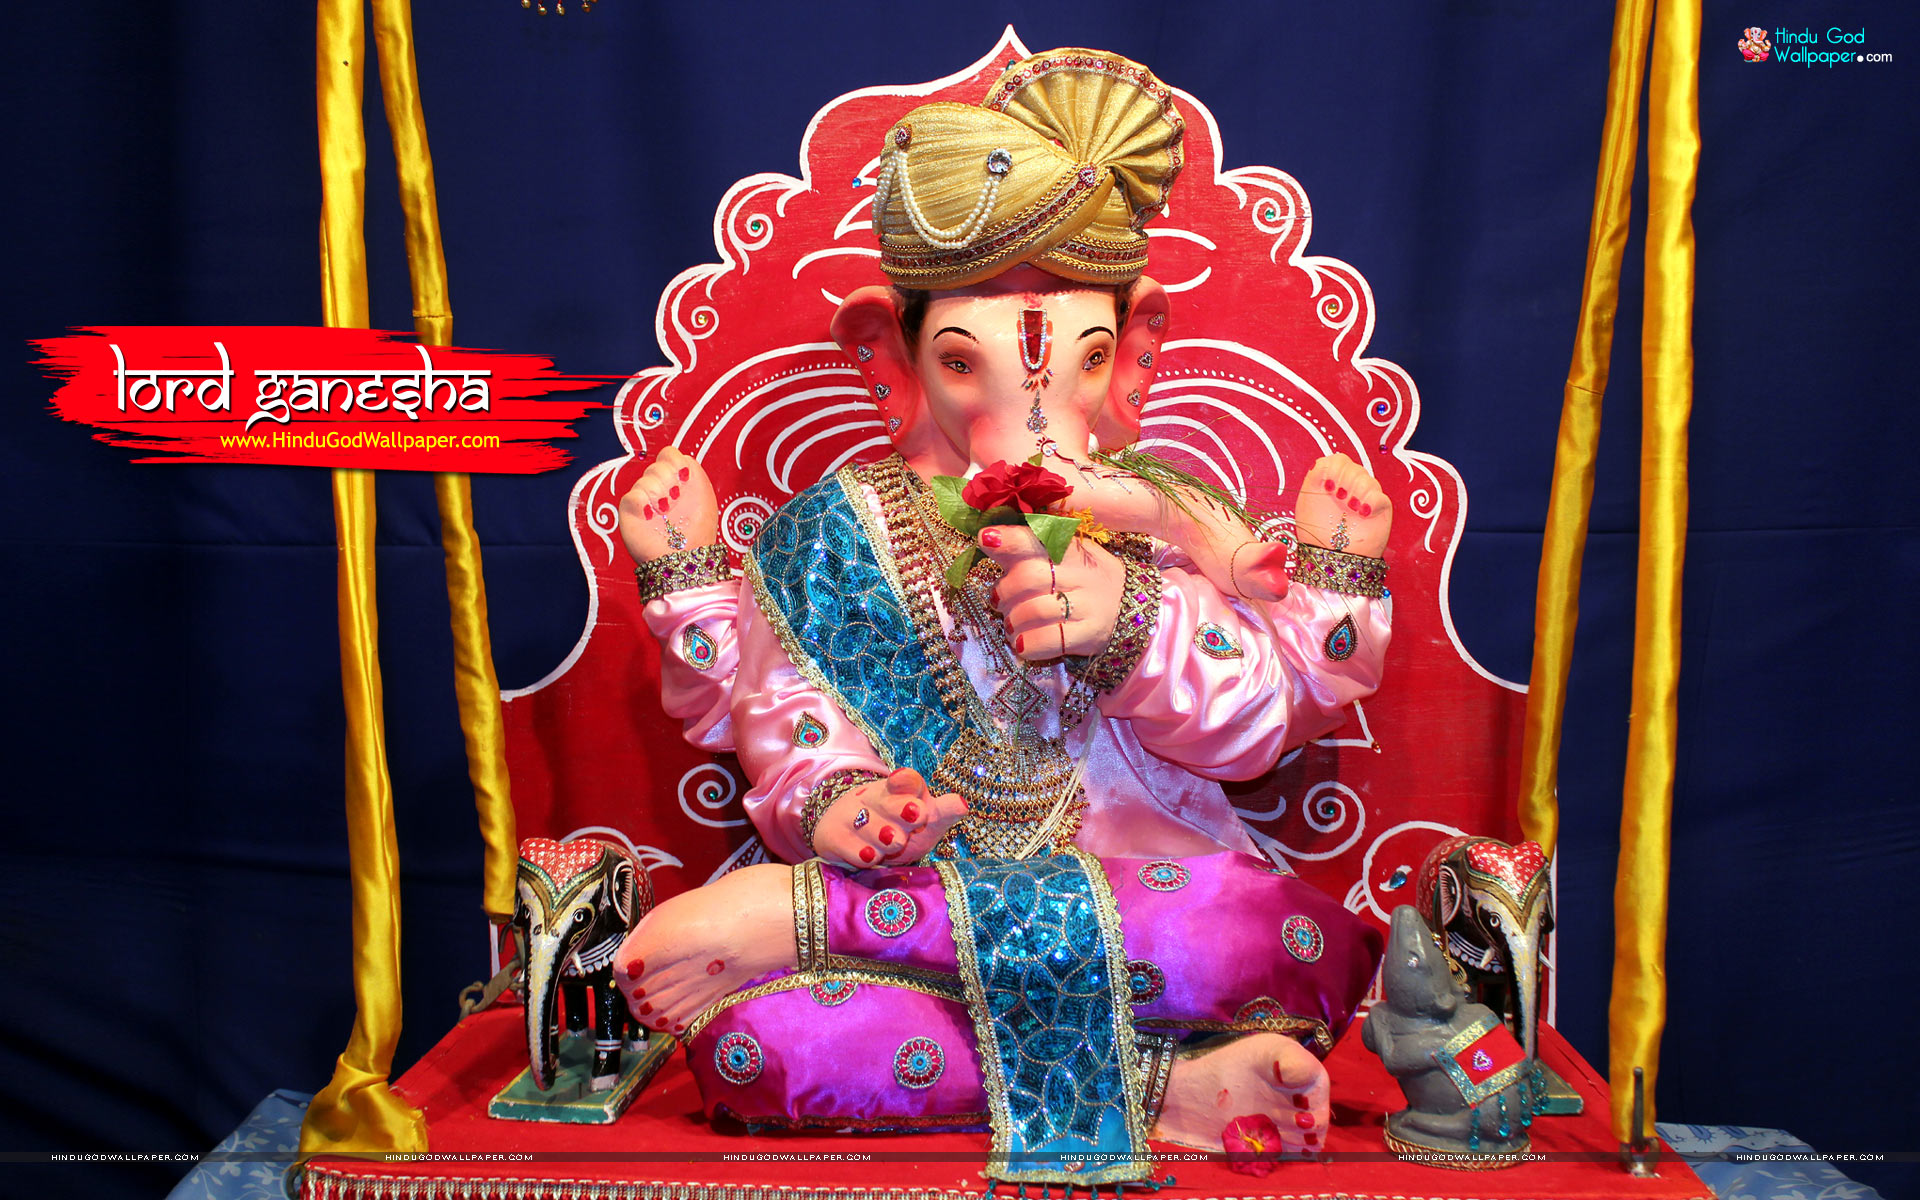 Must see Wallpaper High Quality Lord Ganesha - 2318_lord-ganesha-wallpaper-hd-18  Gallery_674785.jpg